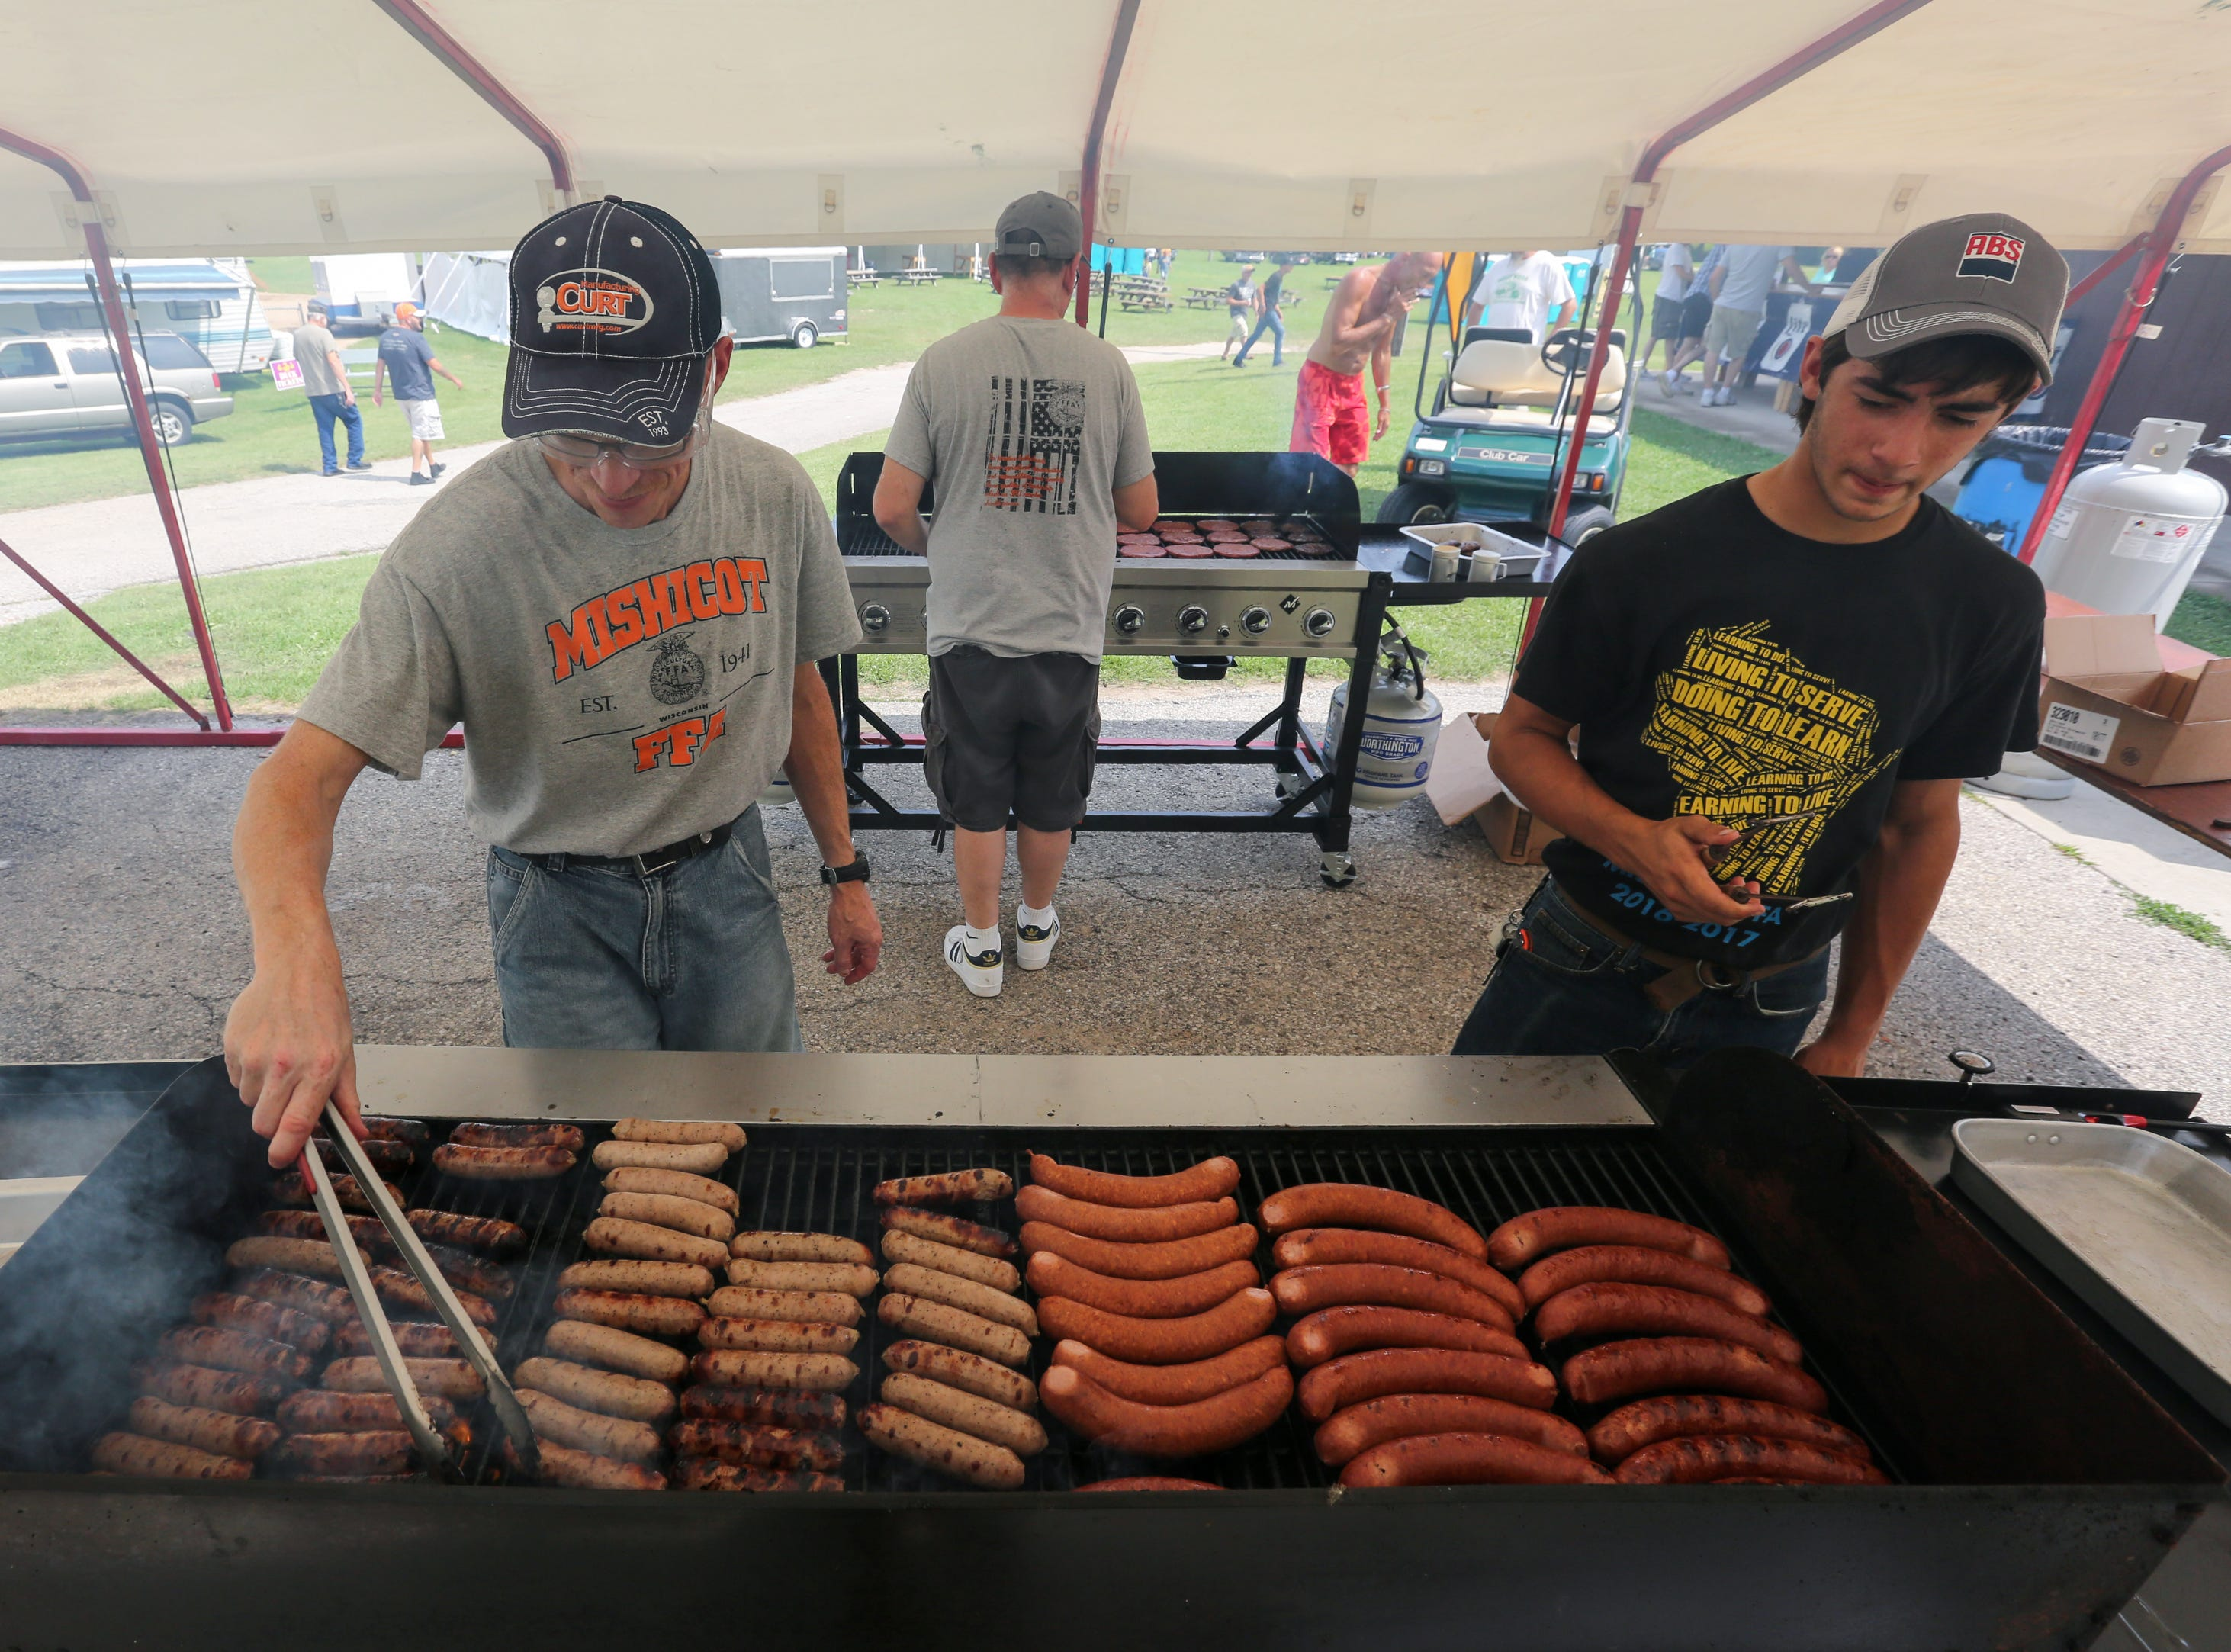 Tom Stinson, left, tends to the brats during Mishicot Riverfest Saturday, August 4, 2018, in Mishicot, Wis. Josh Clark/USA TODAY NETWORK-Wisconsin